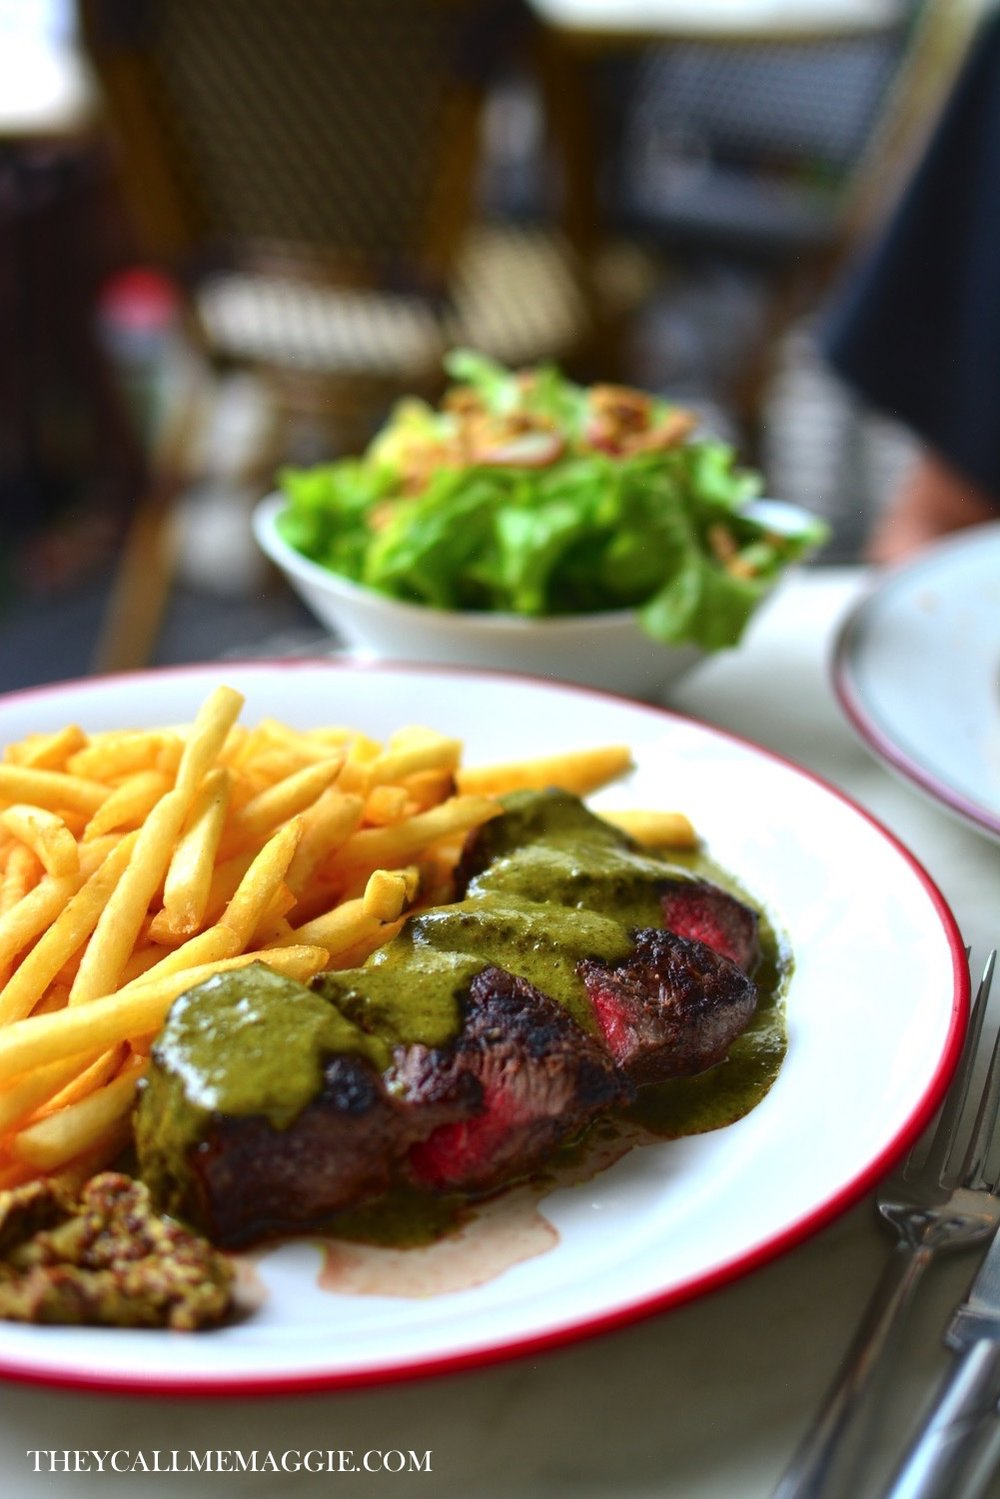 entrecote-steak-south-yarra.jpg